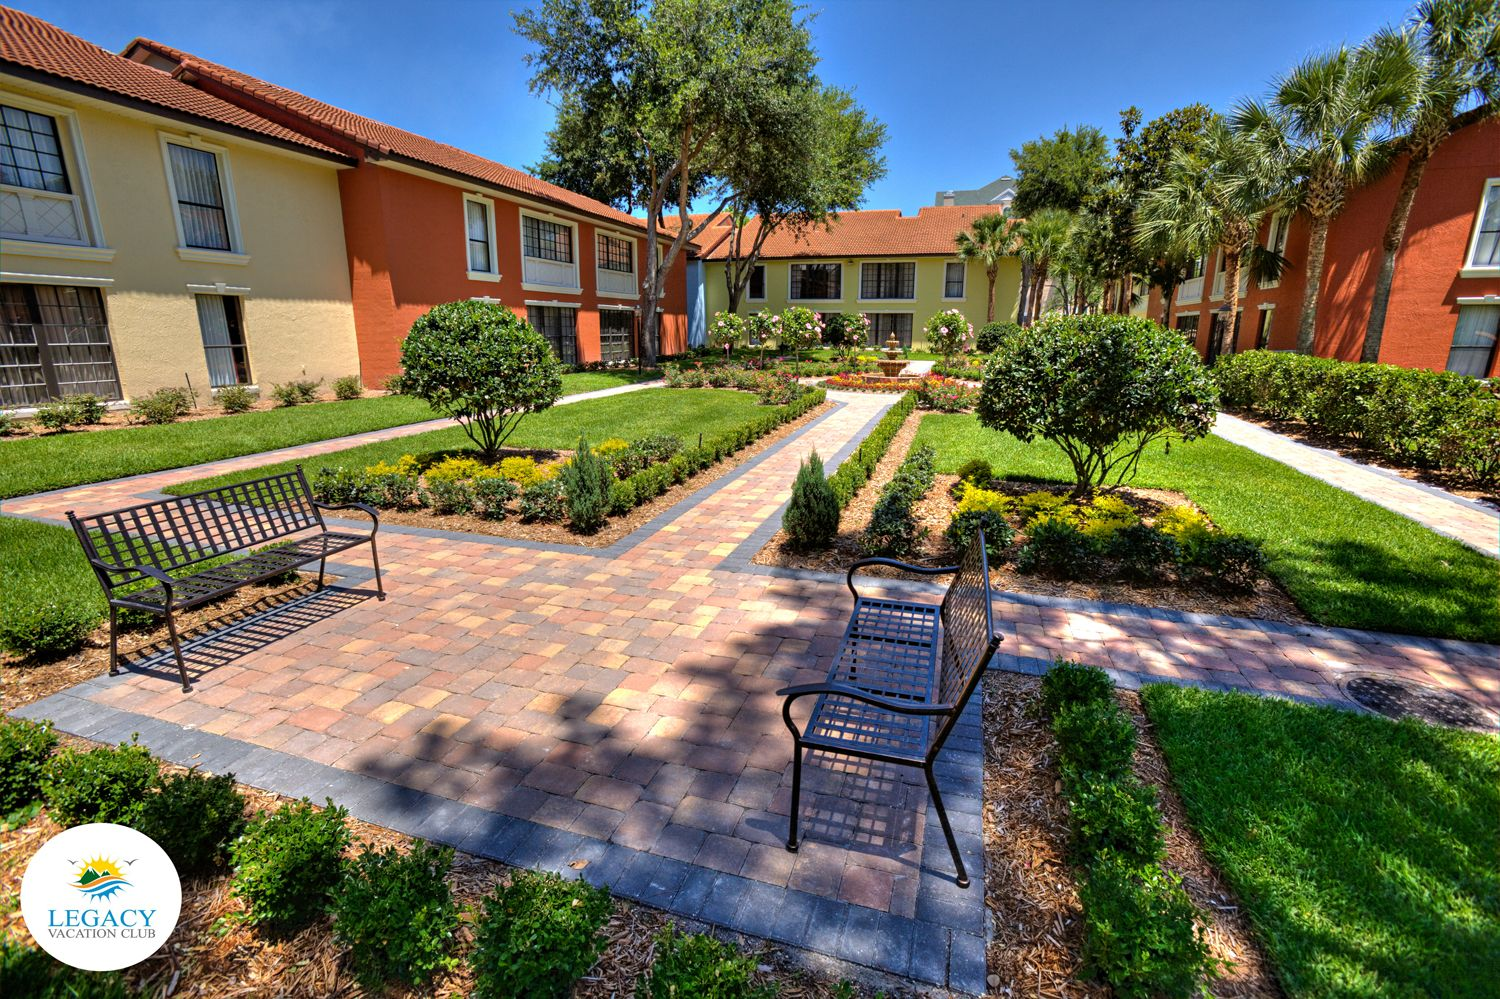 Take a charming stroll at Legacy Vacation Club Lake Buena